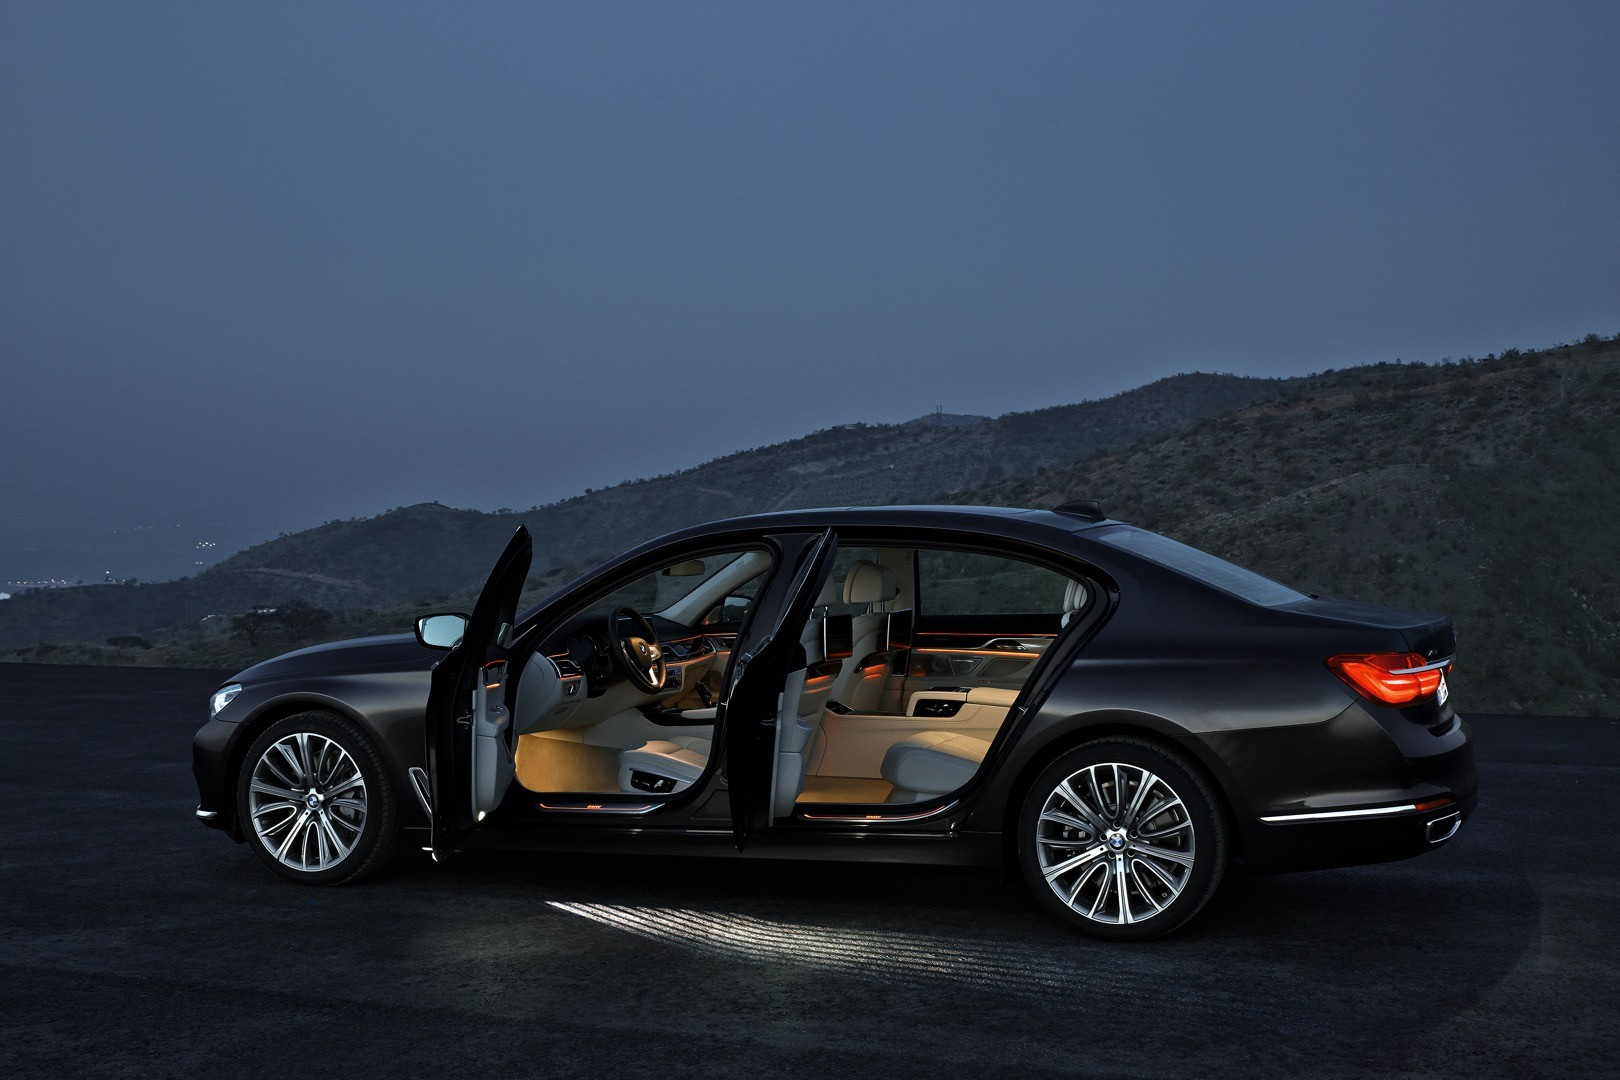 2016-bmw-7-series-finally-officially-unveiled-the-good-stuffs-inside-photo-gallery_12